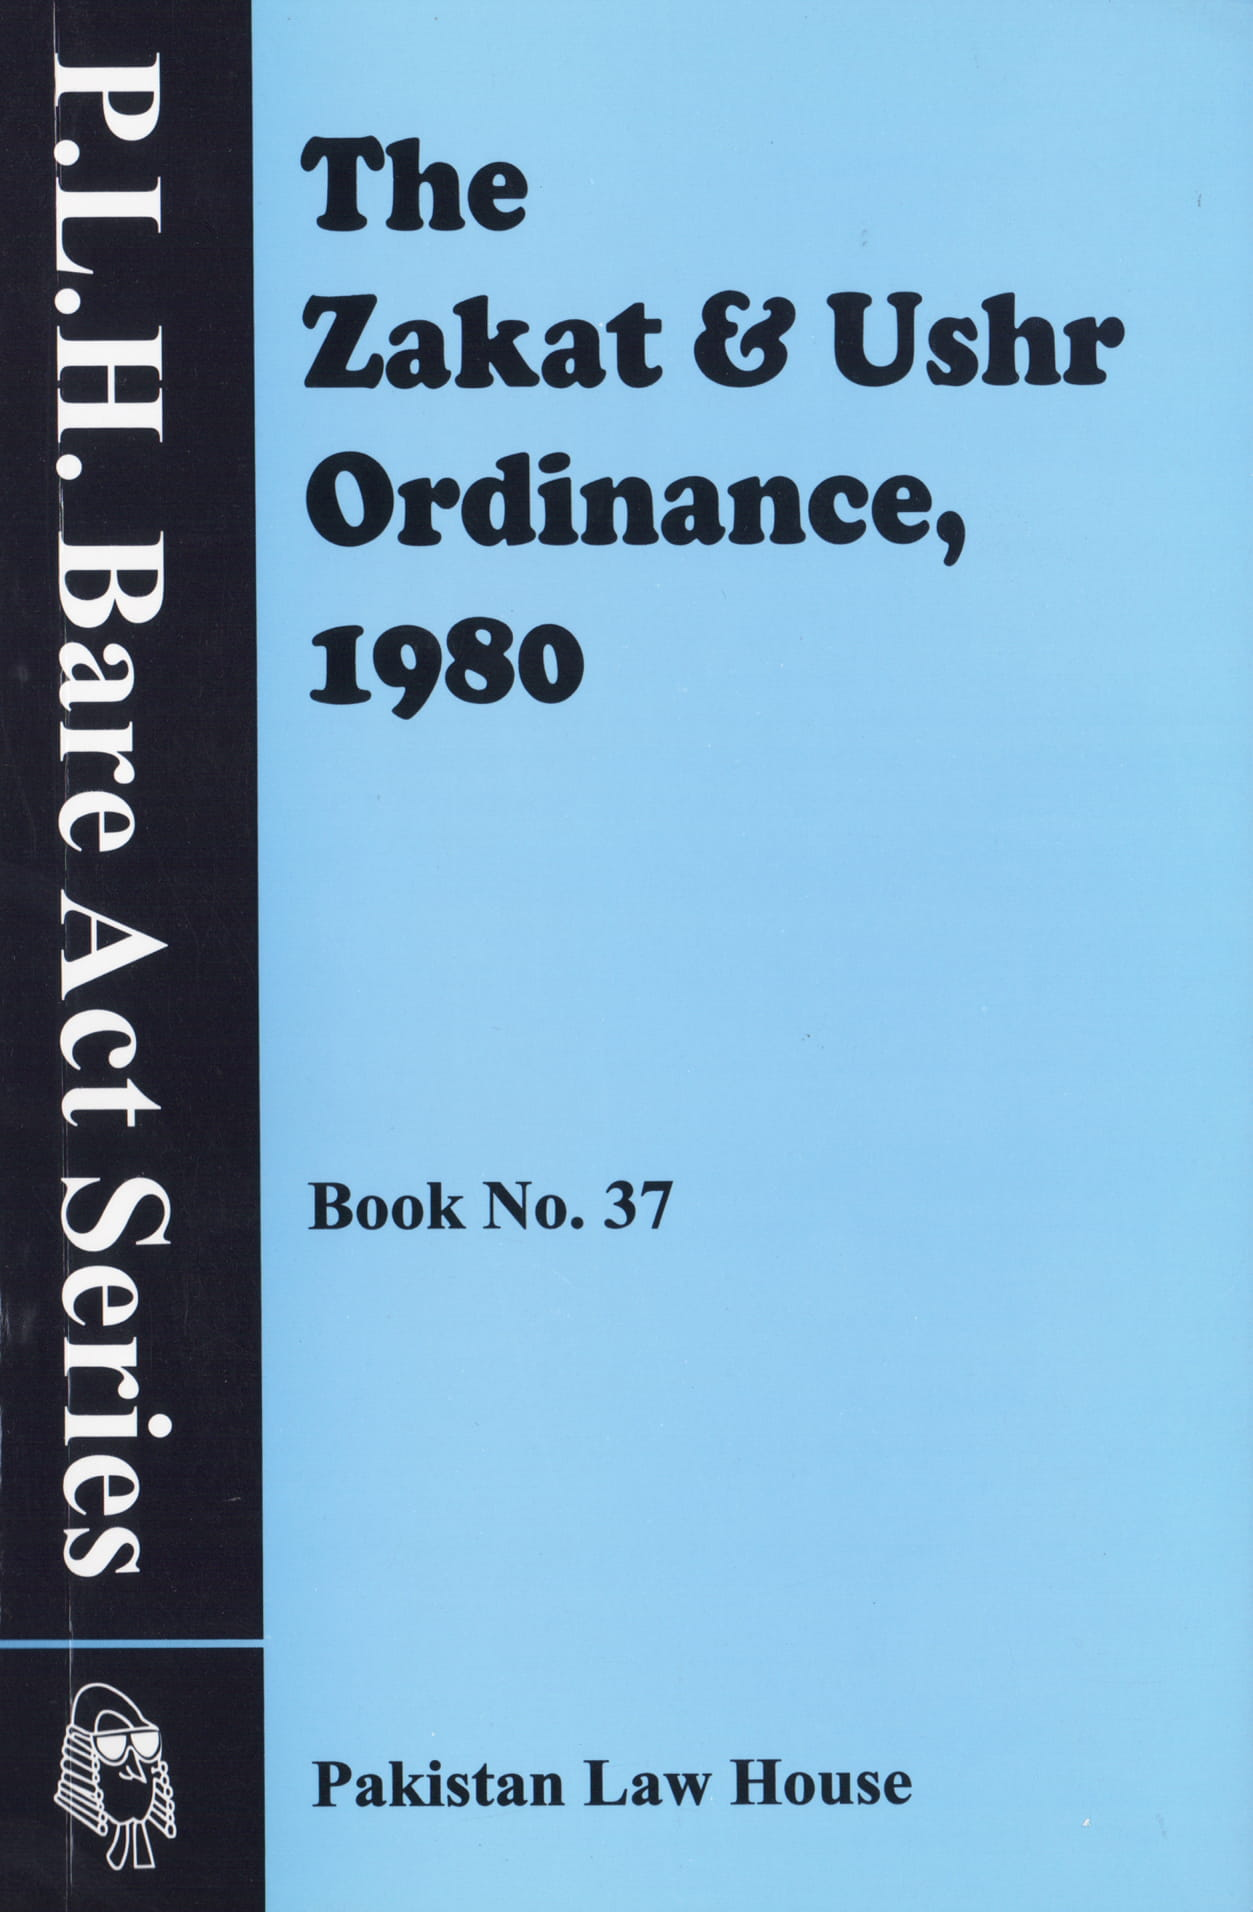 The Zakat And Ushr Ordinance, 1980